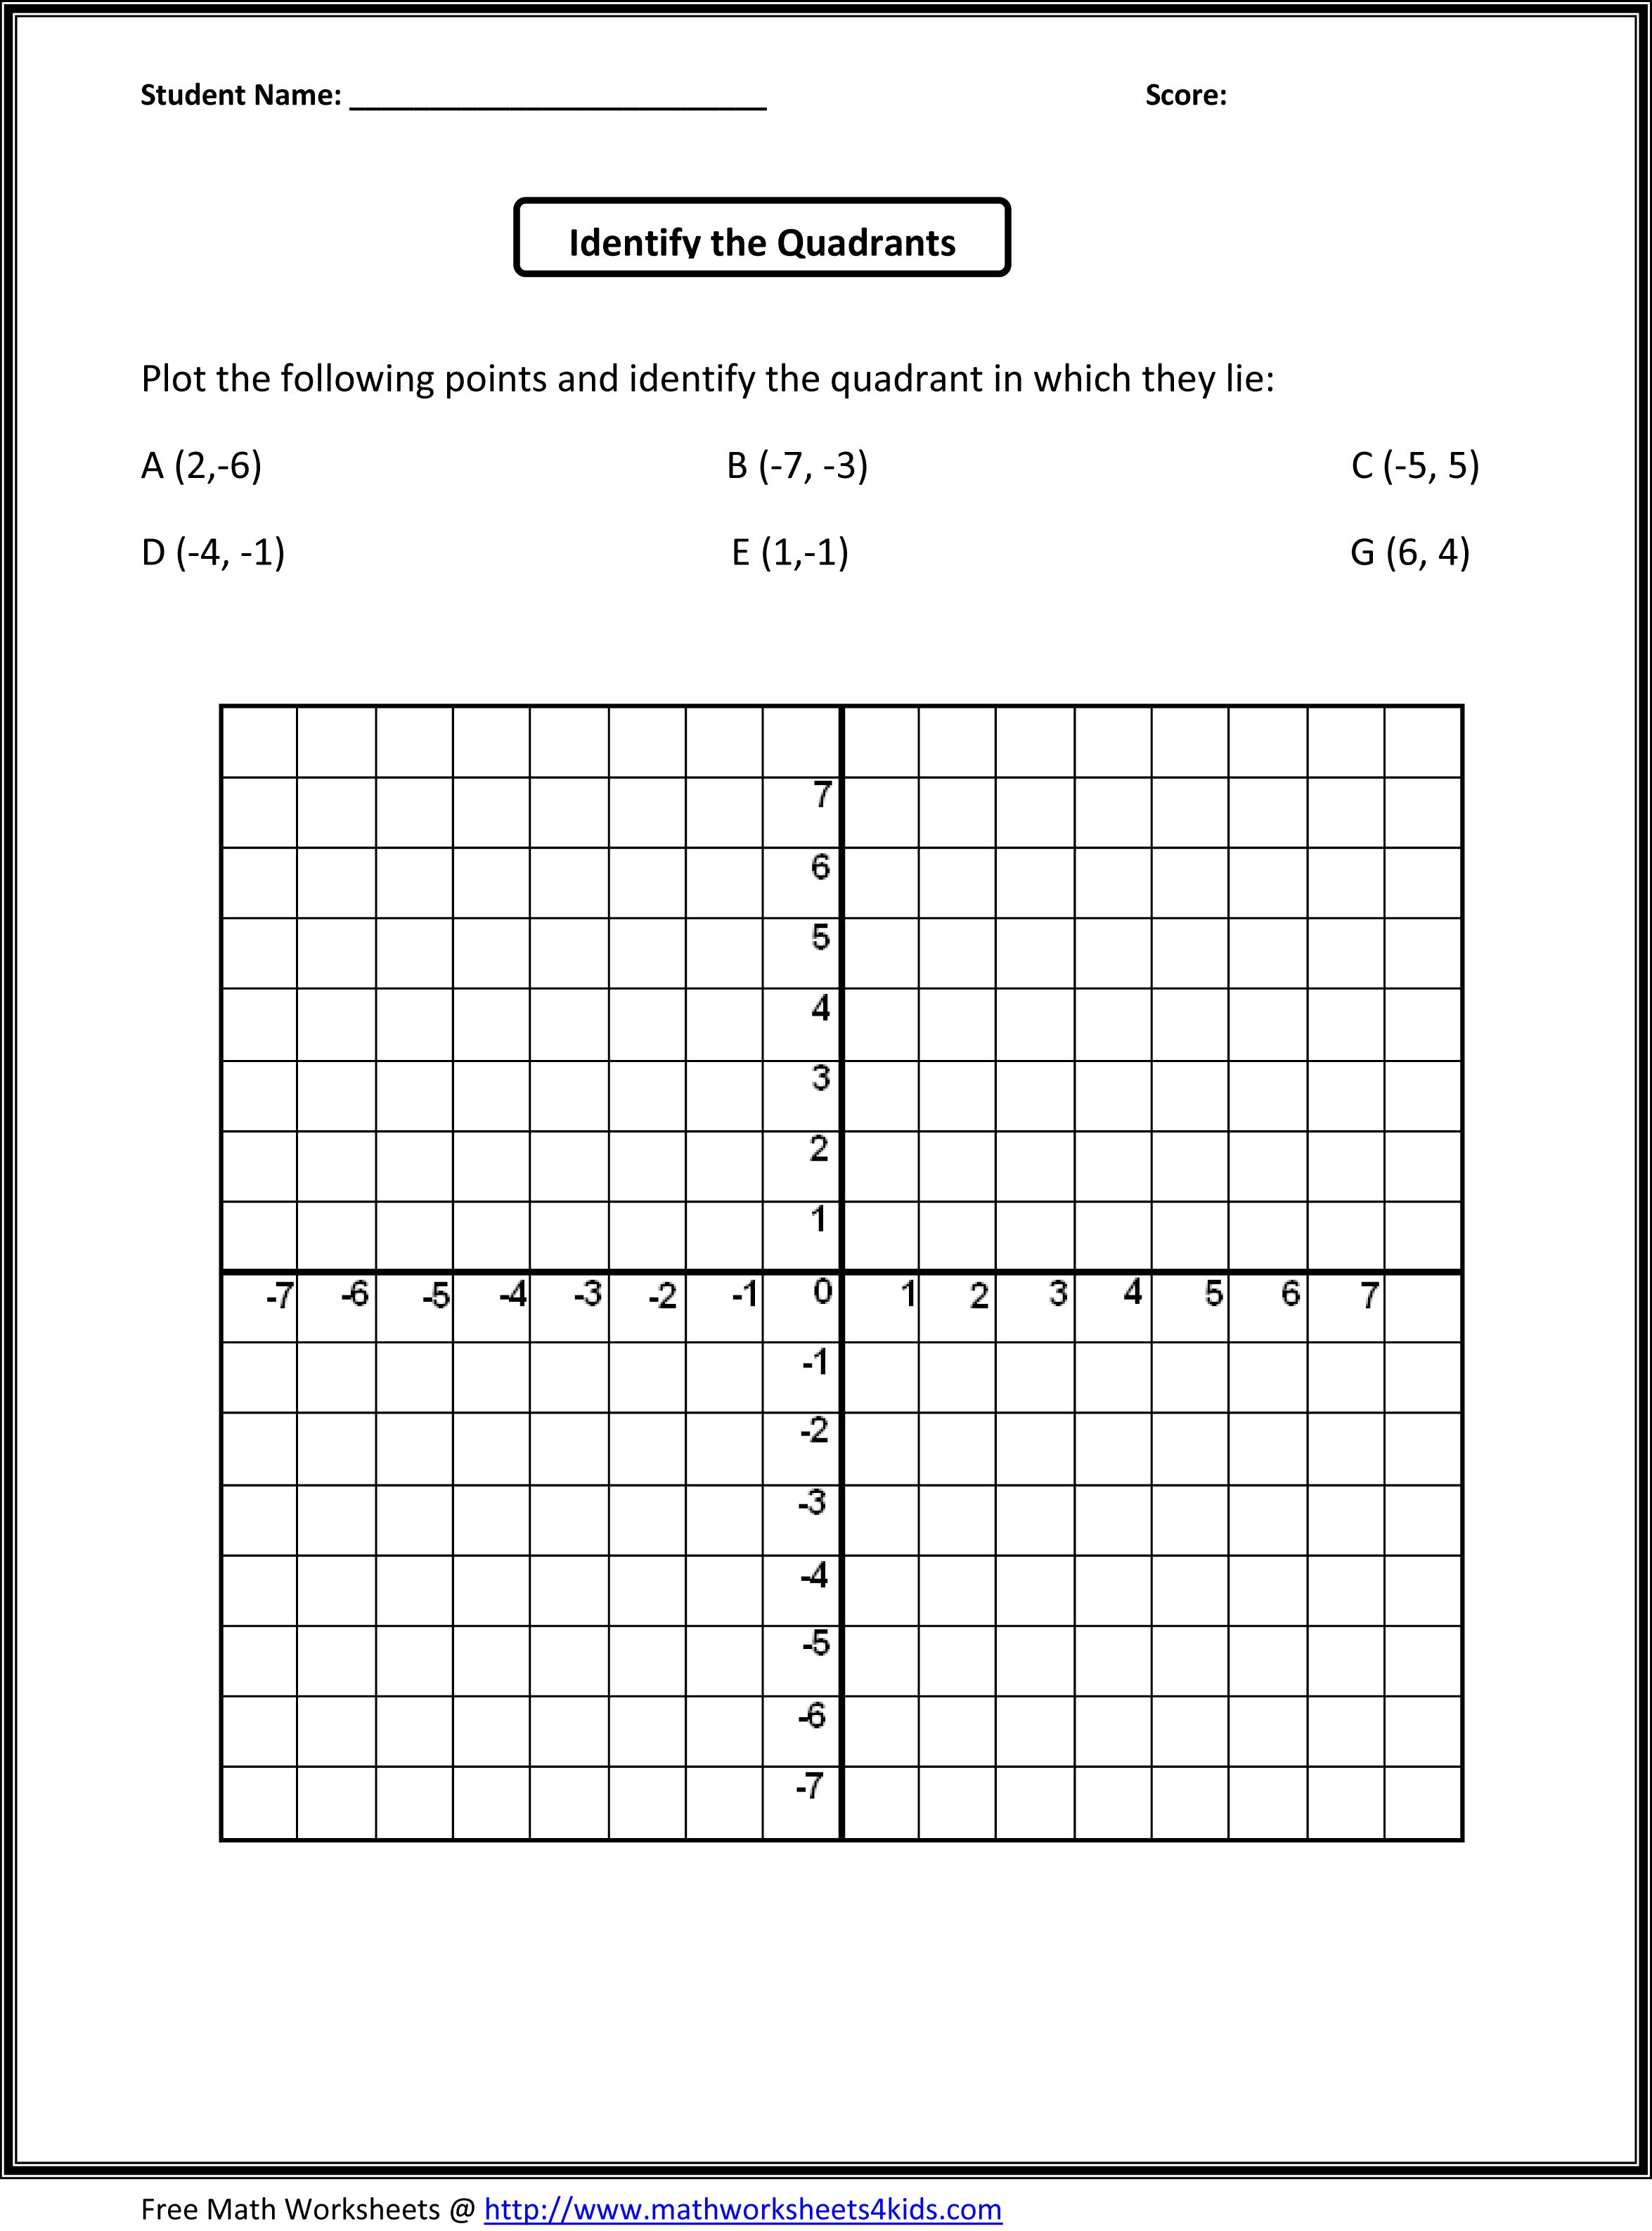 math worksheet : 1000 images about madi math on pinterest  5th grade math  : Math Worksheets For 5th Grade